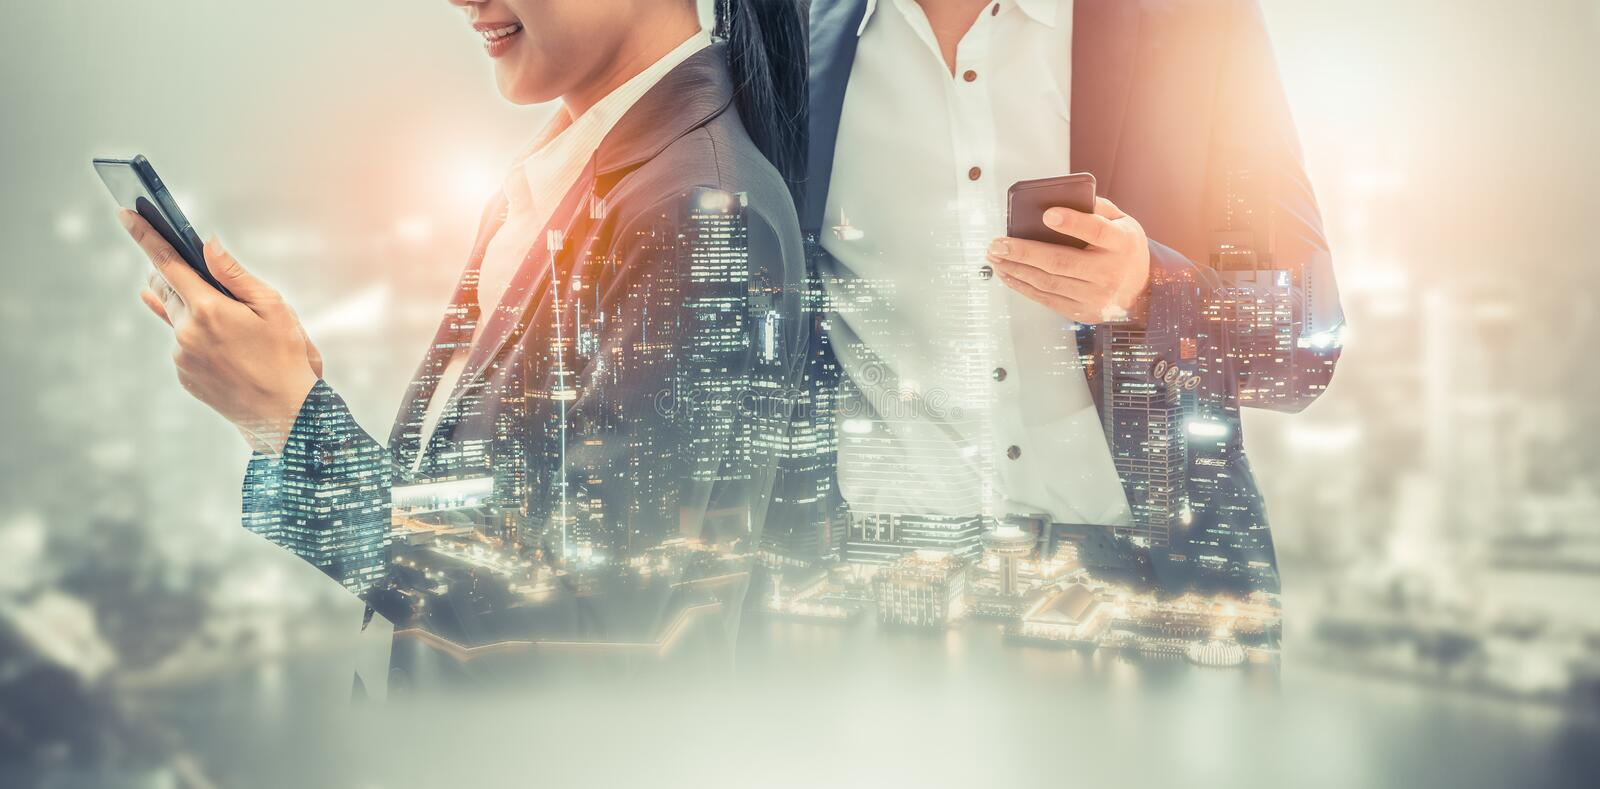 Mobile phone telecommunication technology concept. Young business people using mobile phone with modern city buildings background. Future telecommunication stock photo